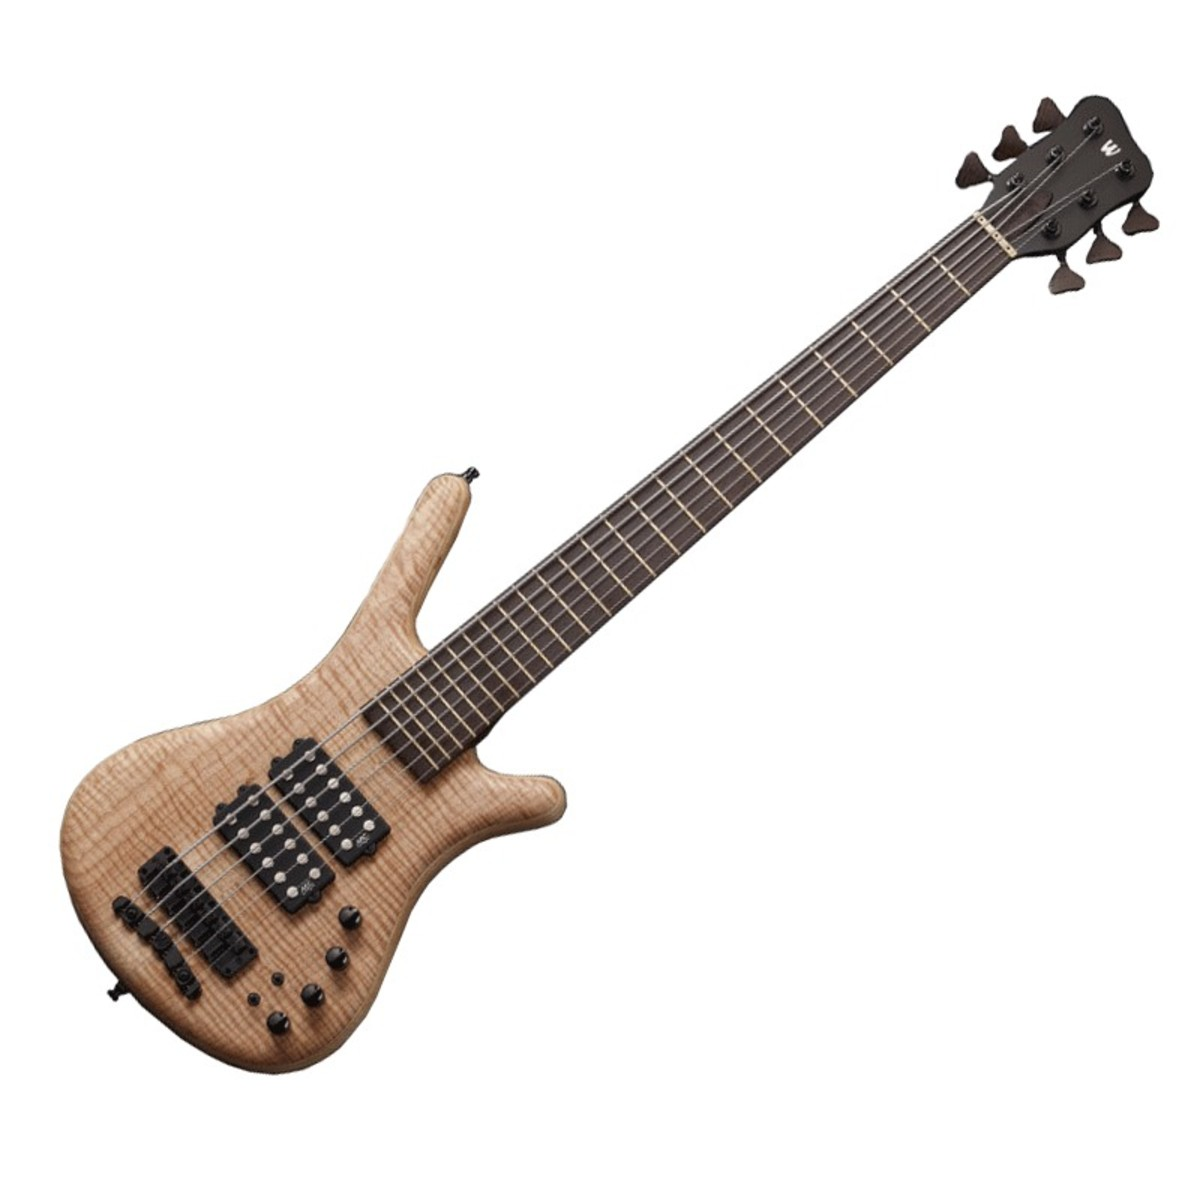 disc warwick corvette 6 string bass guitar natural oil finish gear4music. Black Bedroom Furniture Sets. Home Design Ideas